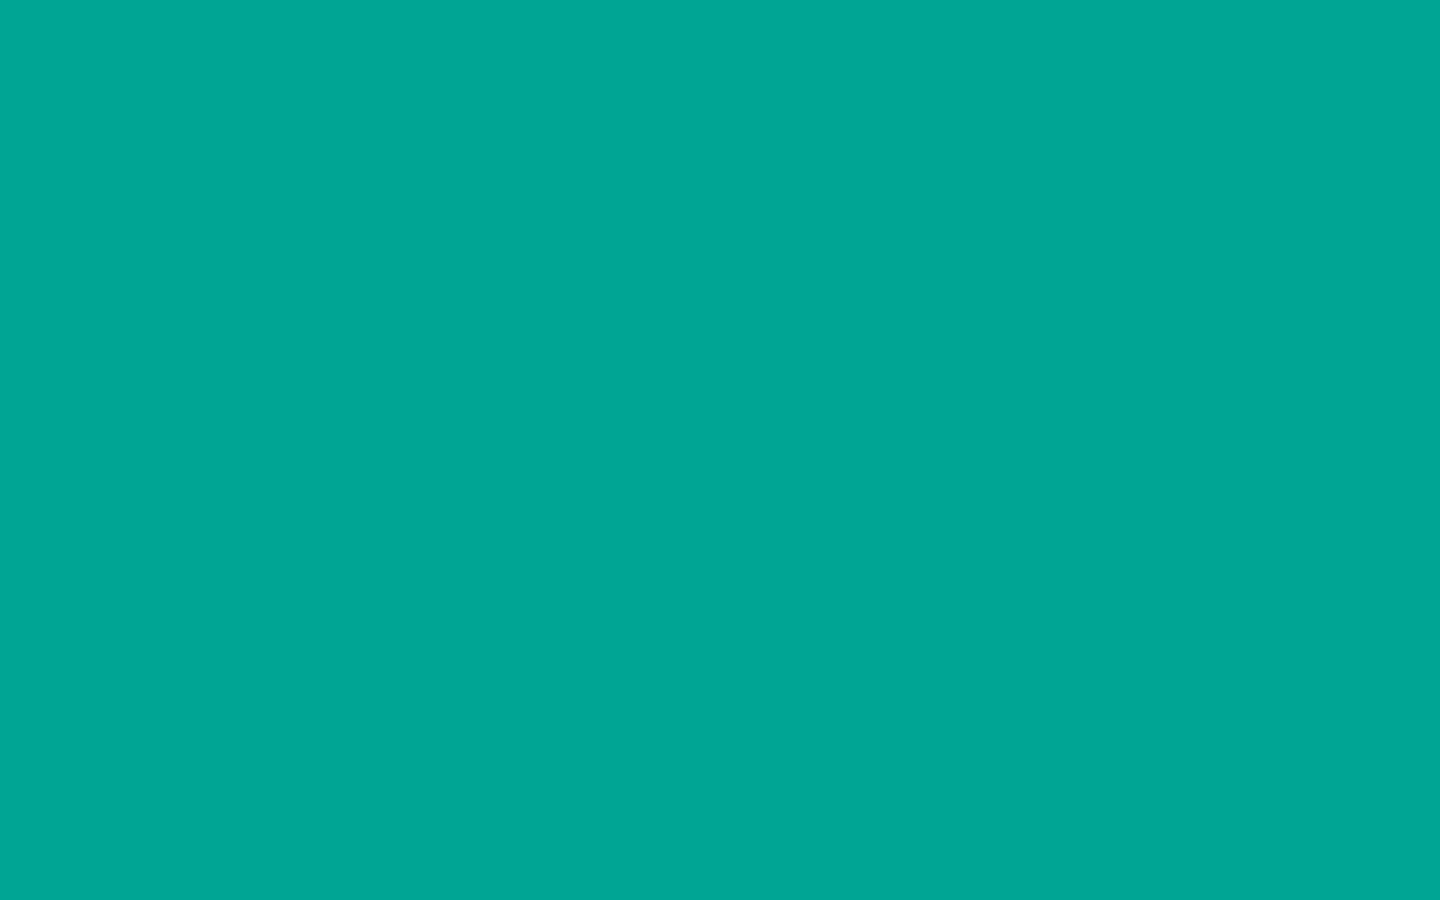 1440x900 Persian Green Solid Color Background